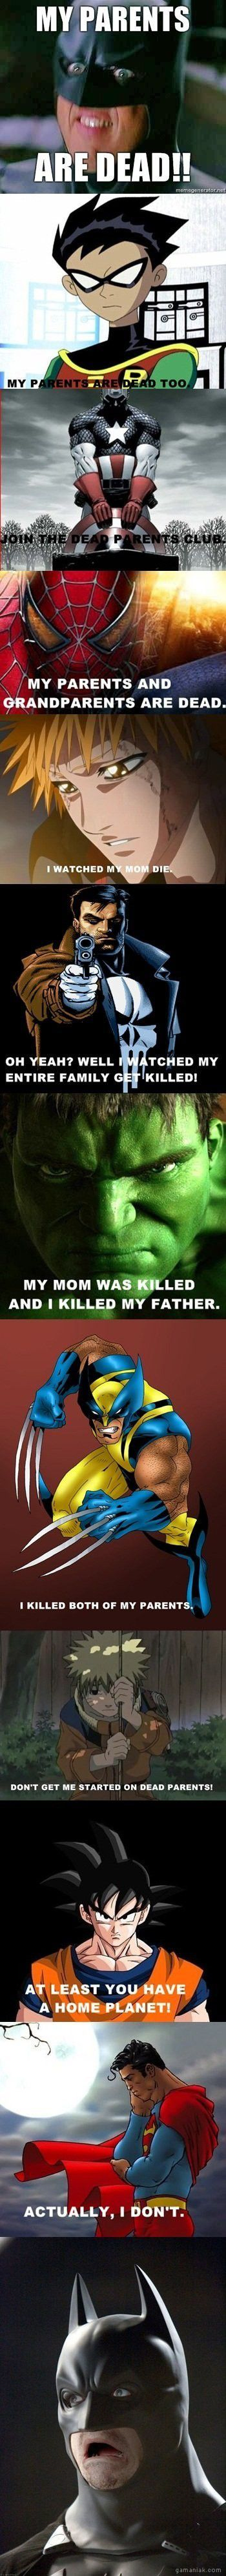 heros-dont-parents-sont-morts